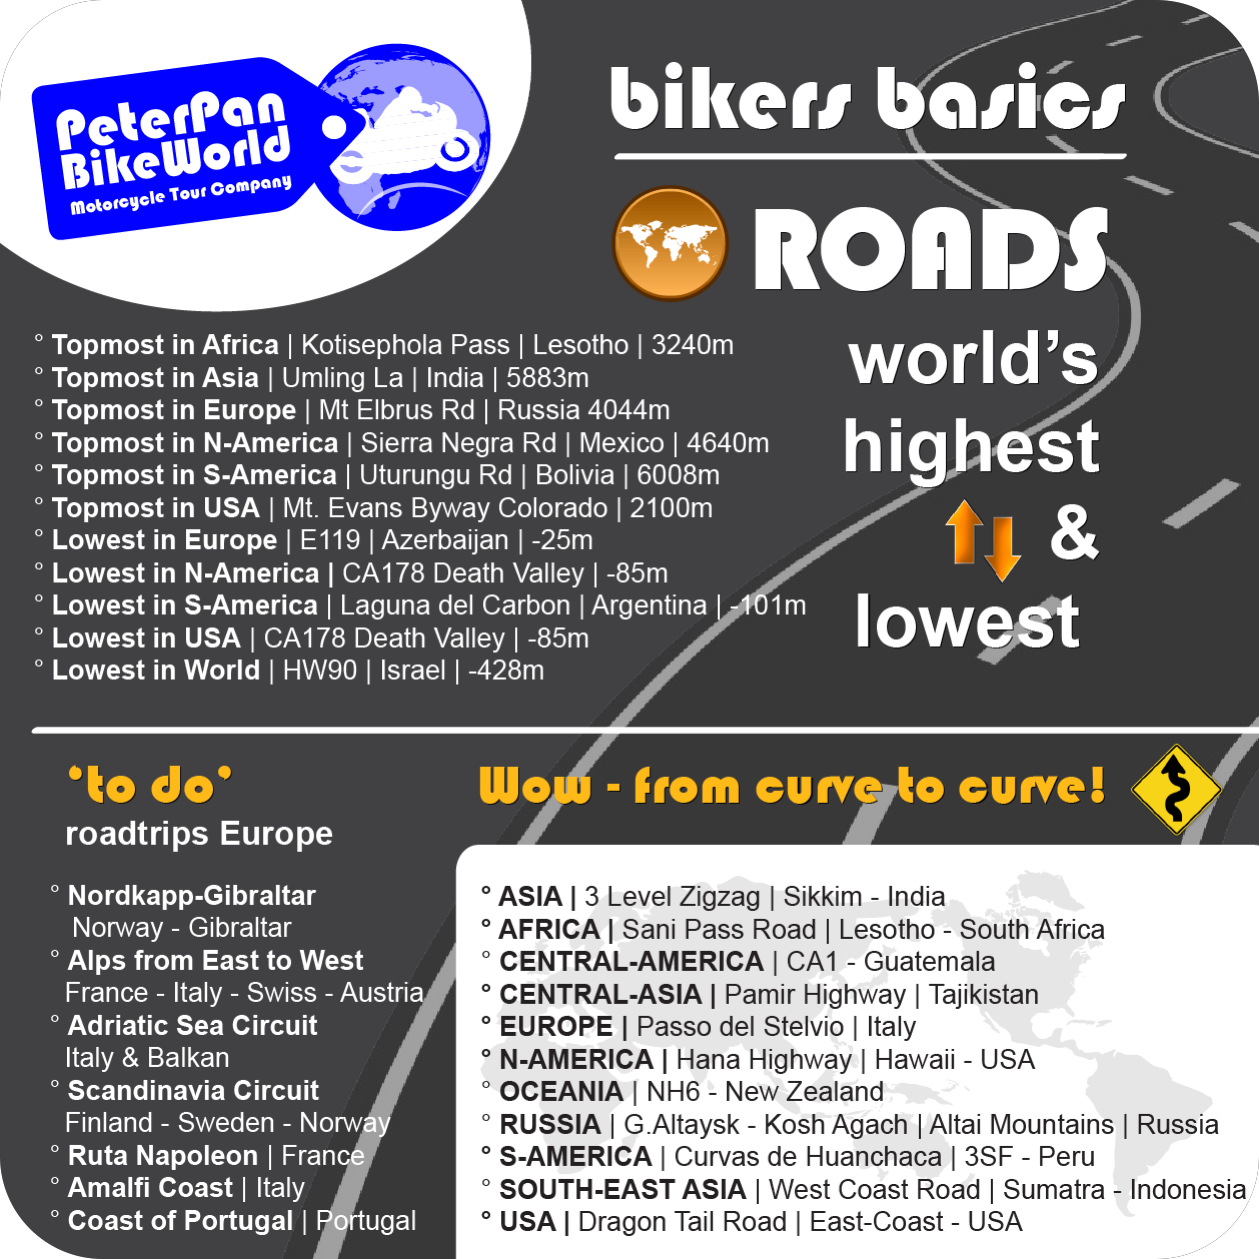 Bikers Basics - World's highest and lowest roads!